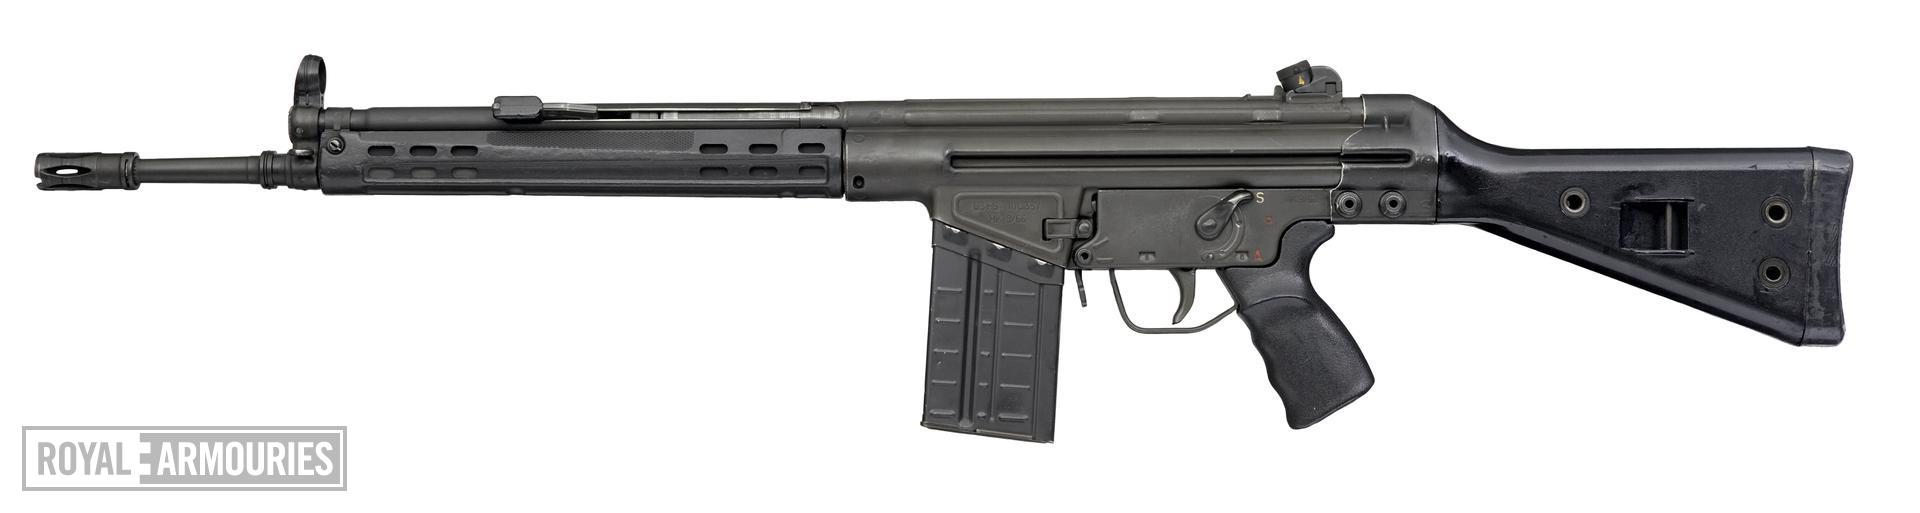 Centrefire automatic rifle - Heckler and Koch G3